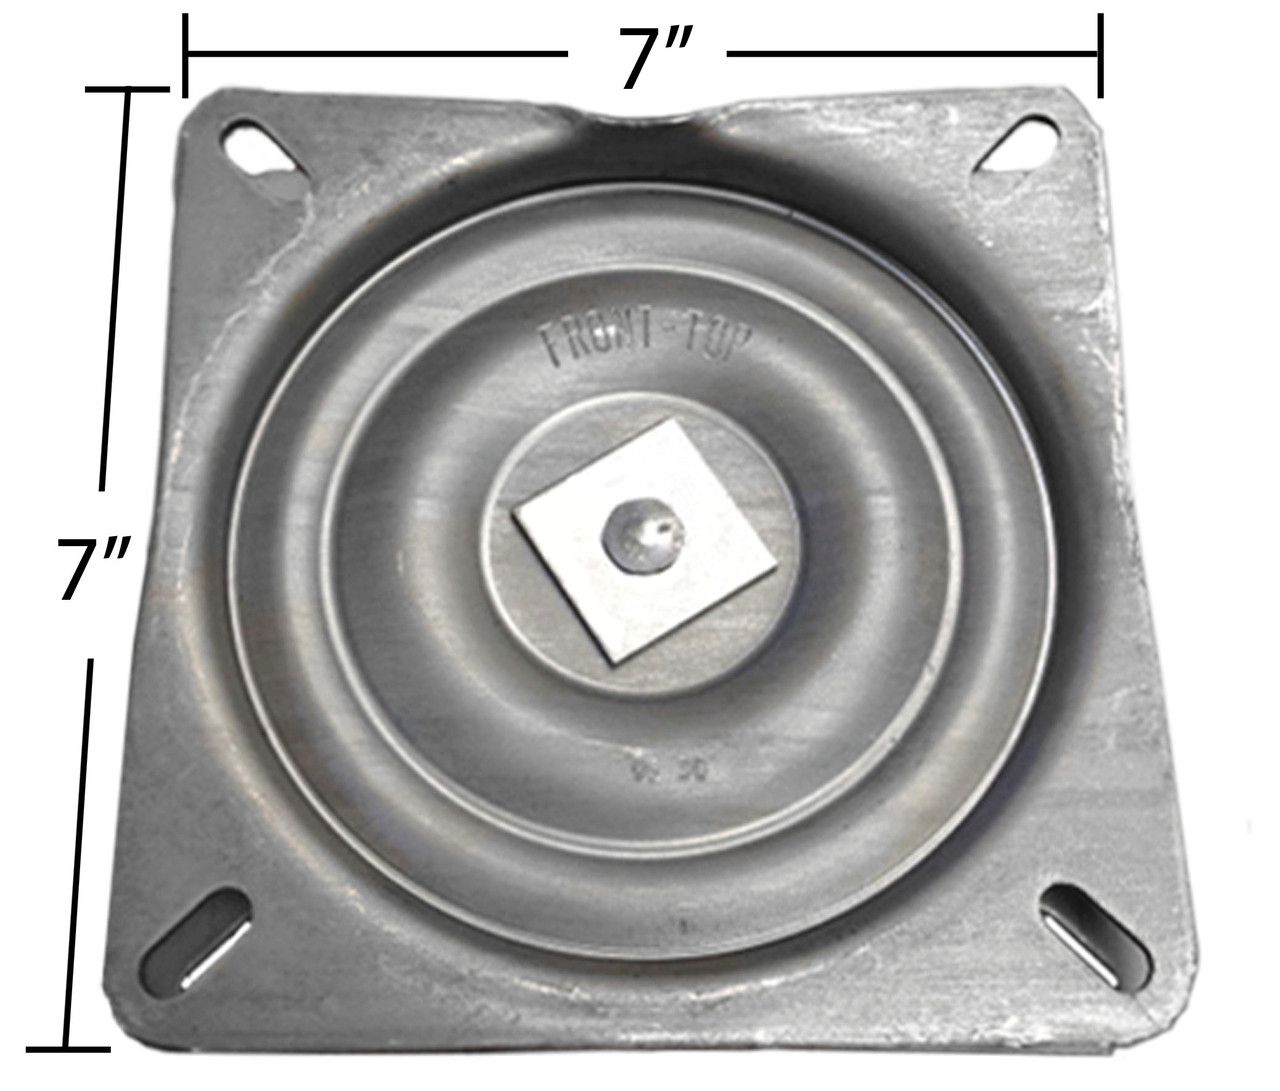 7quot Replacement Bar Stool Swivel : S4696252520Top252520View252520with252520dims25281252954635140427829612801280 from www.chairpartsonline.com size 1280 x 1091 jpeg 561kB